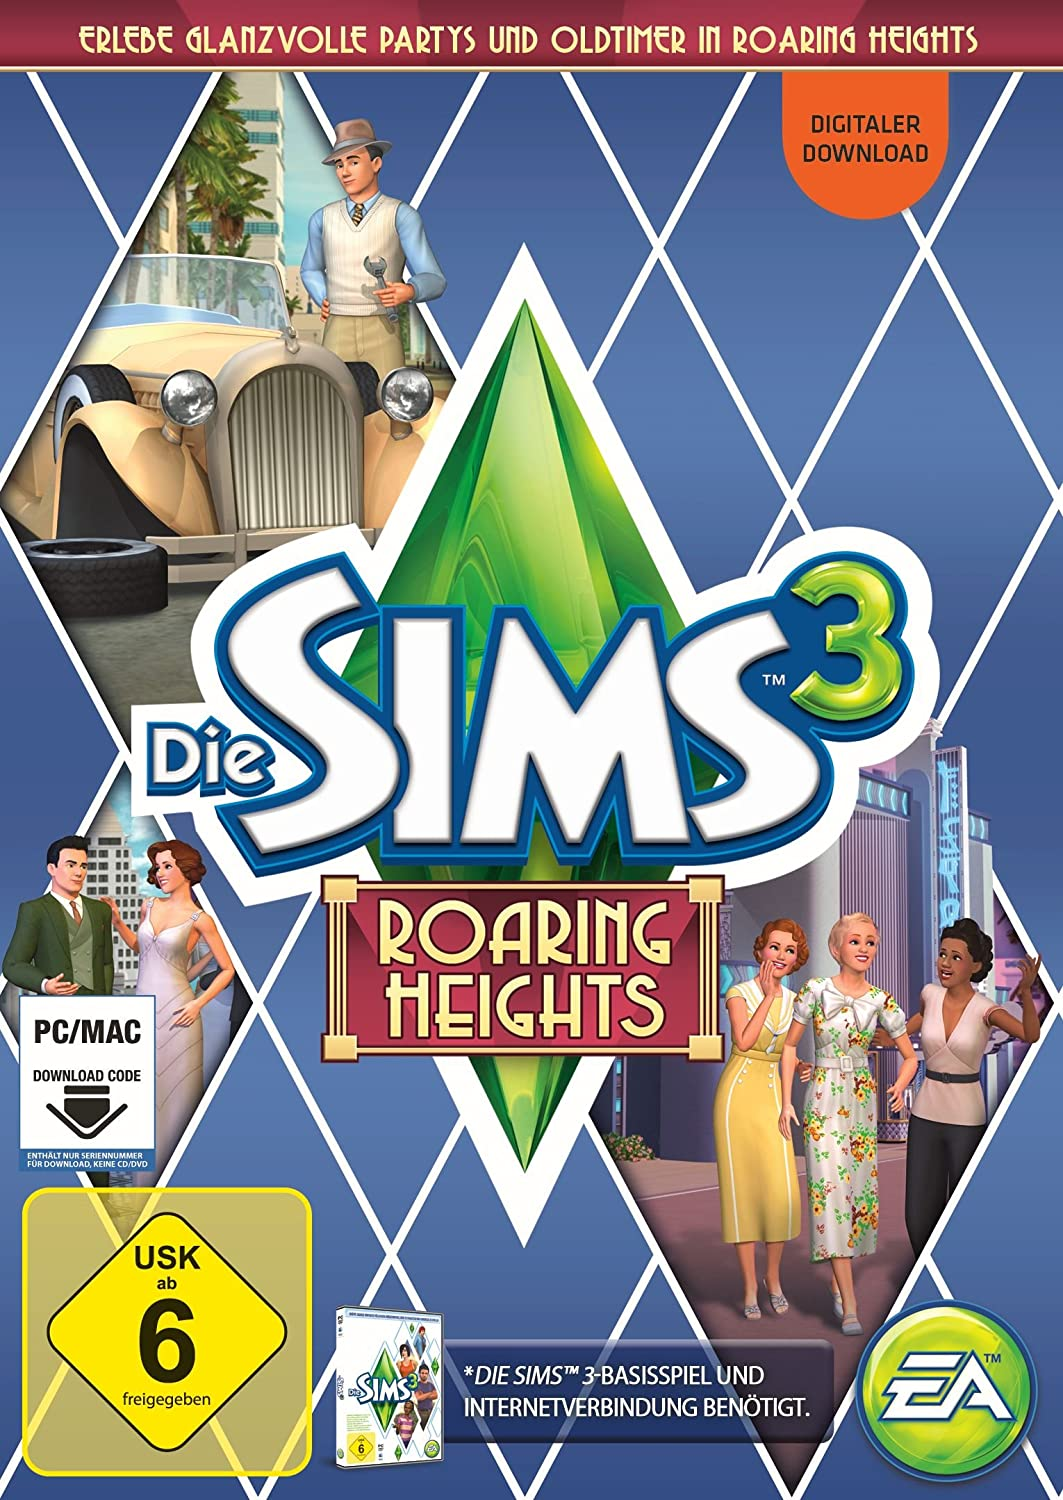 Sims 3 Design Garten Accessoires Genial Die Sims 3 Roaring Heights Add Amazon Games